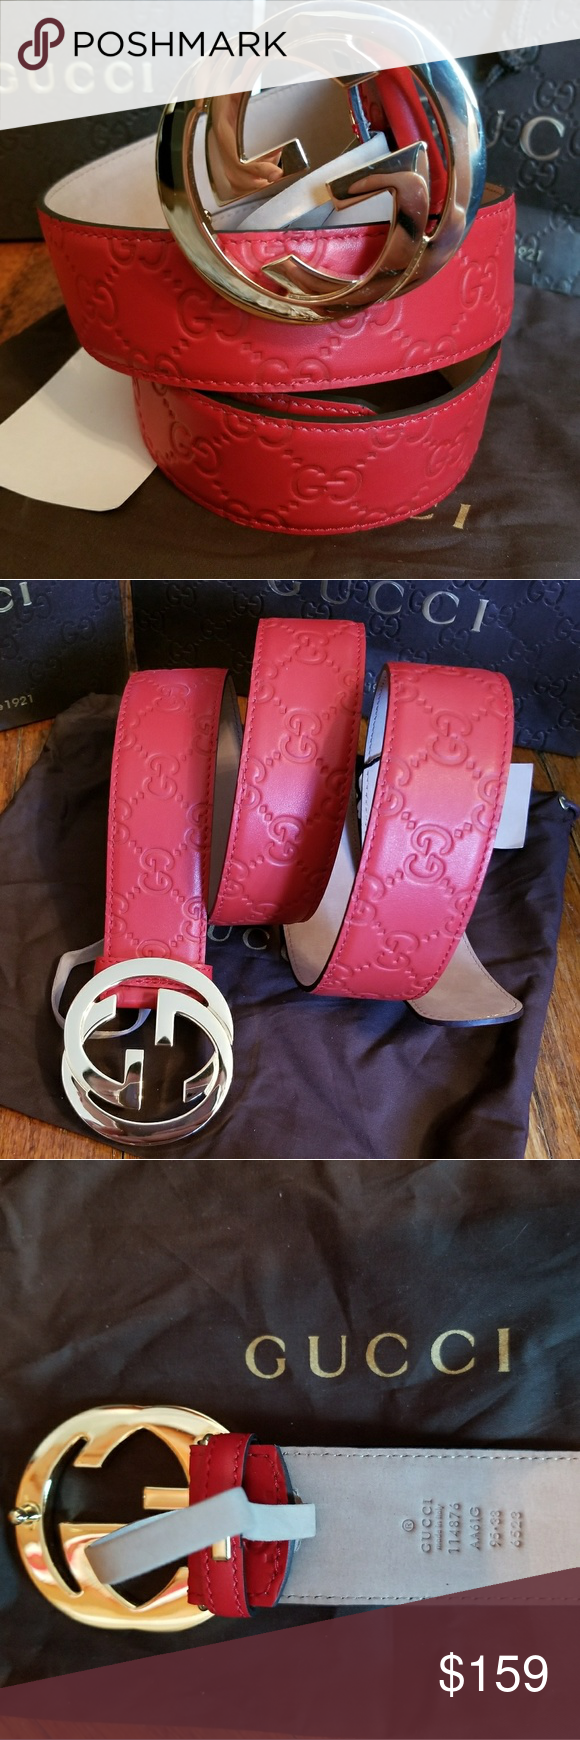 31600ecc1 😍Authentic Gucci Belt Red Guccissima Print 😍Authentic Gucci Belt Red  Guccissima Print with Gold GG Buckle. Nice. Includes tags, dust bag and box.